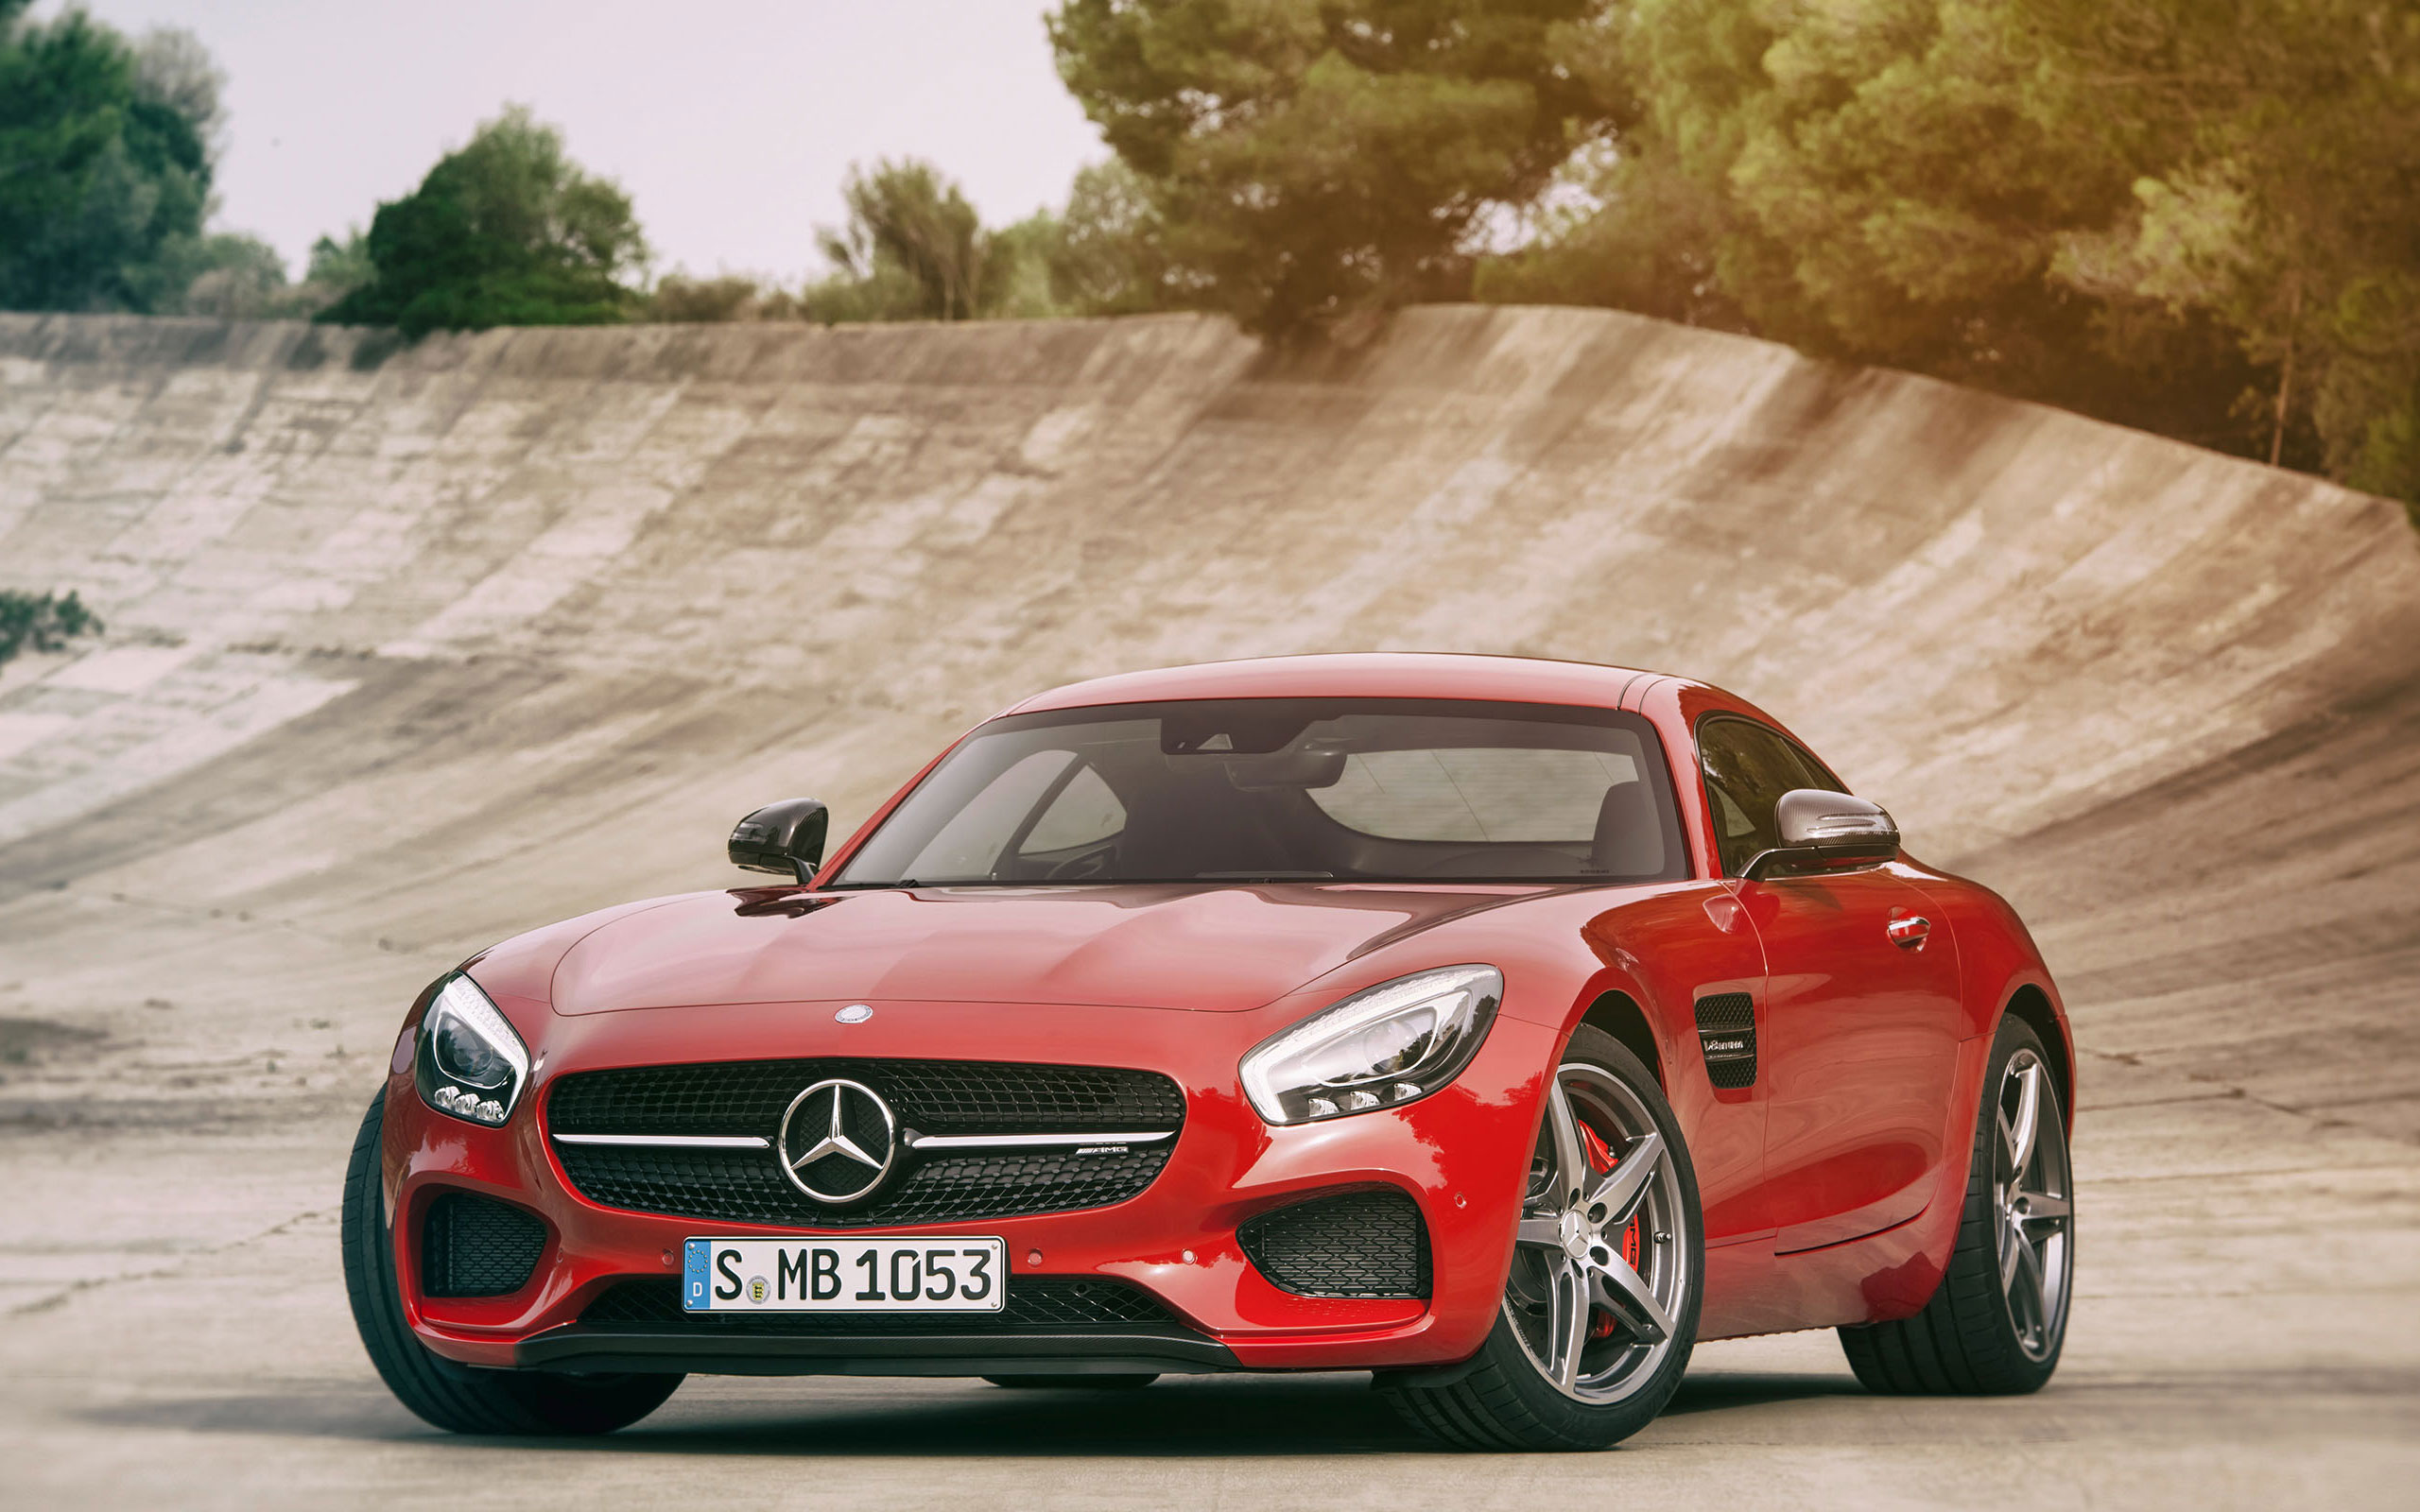 2015-AMG_GT-FUTURE-GALLERY-016-WR-D